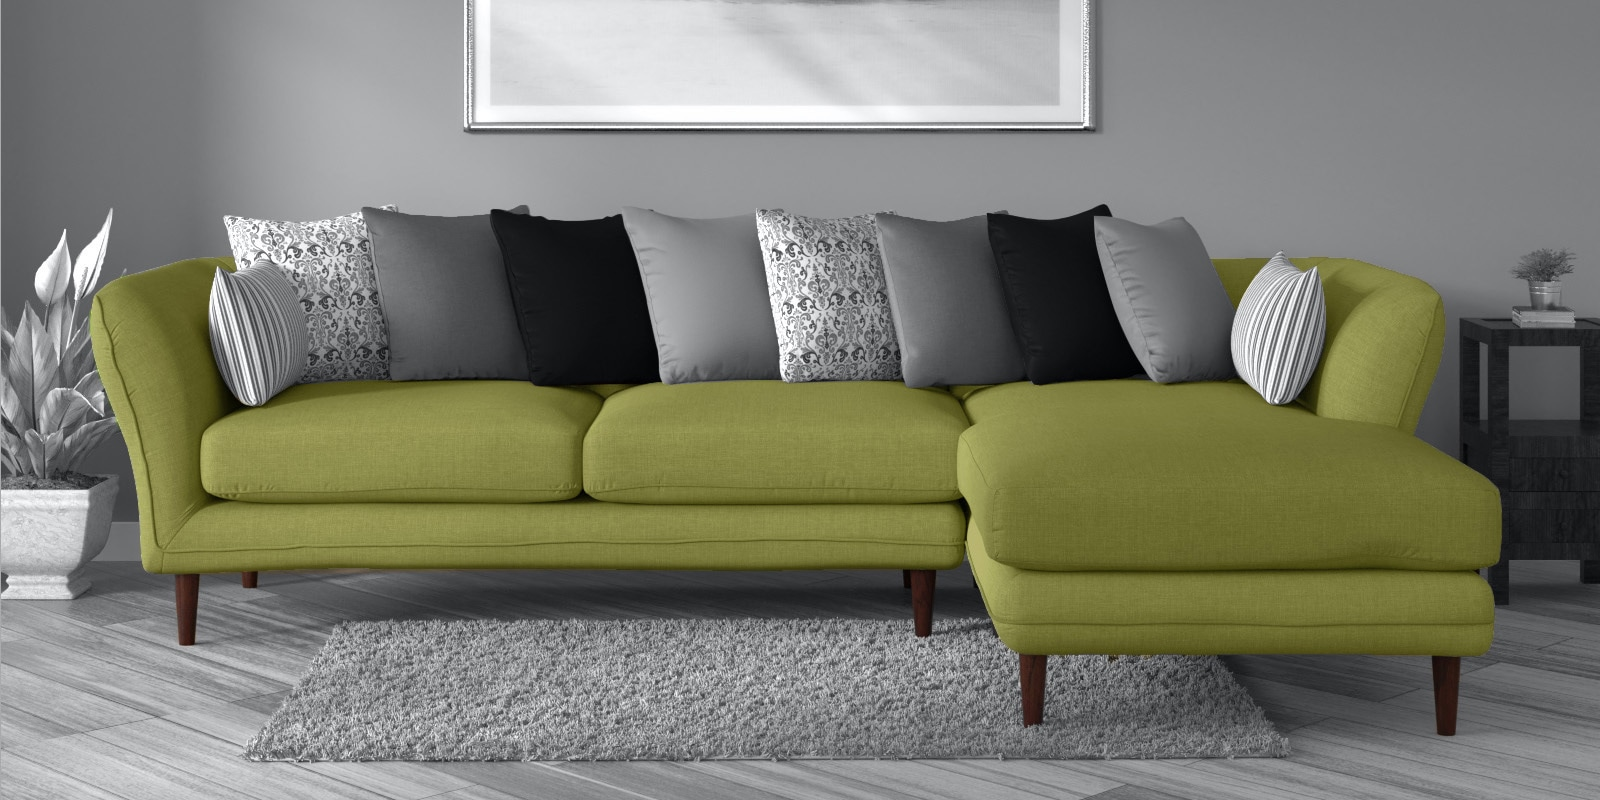 Picture of: Buy Aleandro 3 Seater Lhs Sectional Sofa In Olive Green Colour By Casacraft Online Contemporary Lhs Sectional Sofas Sectional Sofas Furniture Pepperfry Product